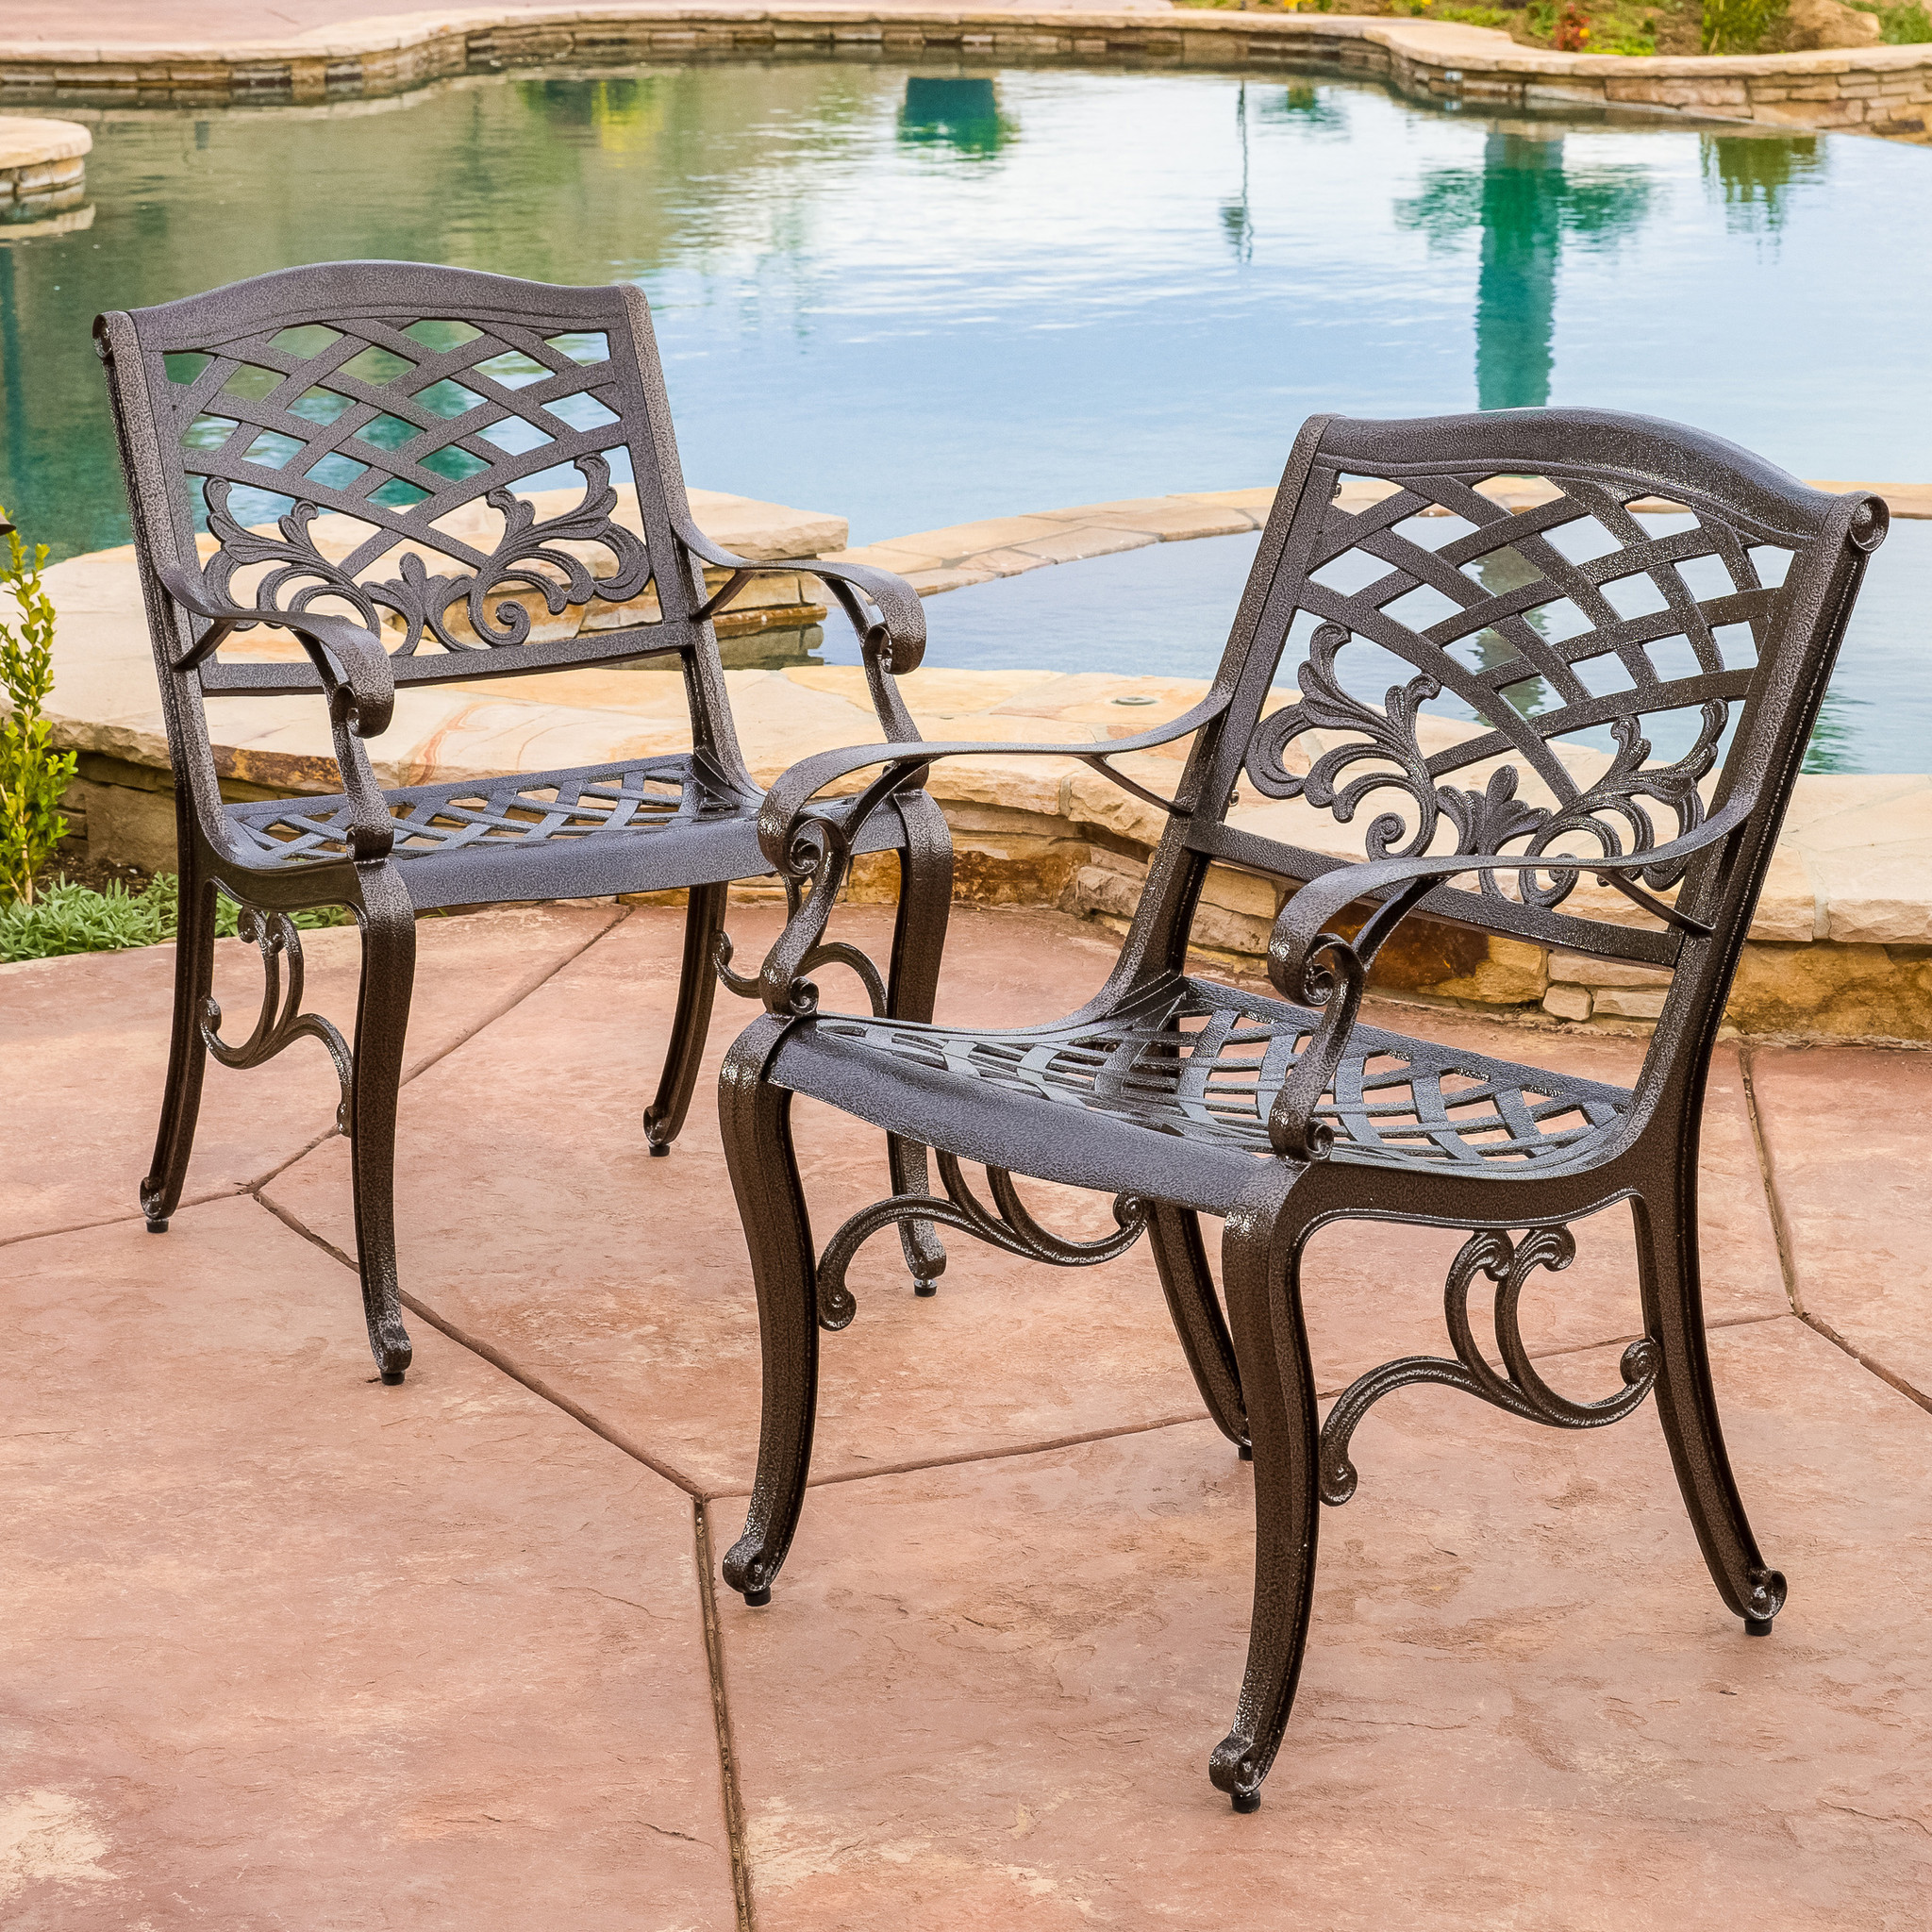 Best ideas about Outdoor Chairs Walmart . Save or Pin Wicker Brown Outdoor Chairs Walmart Now.